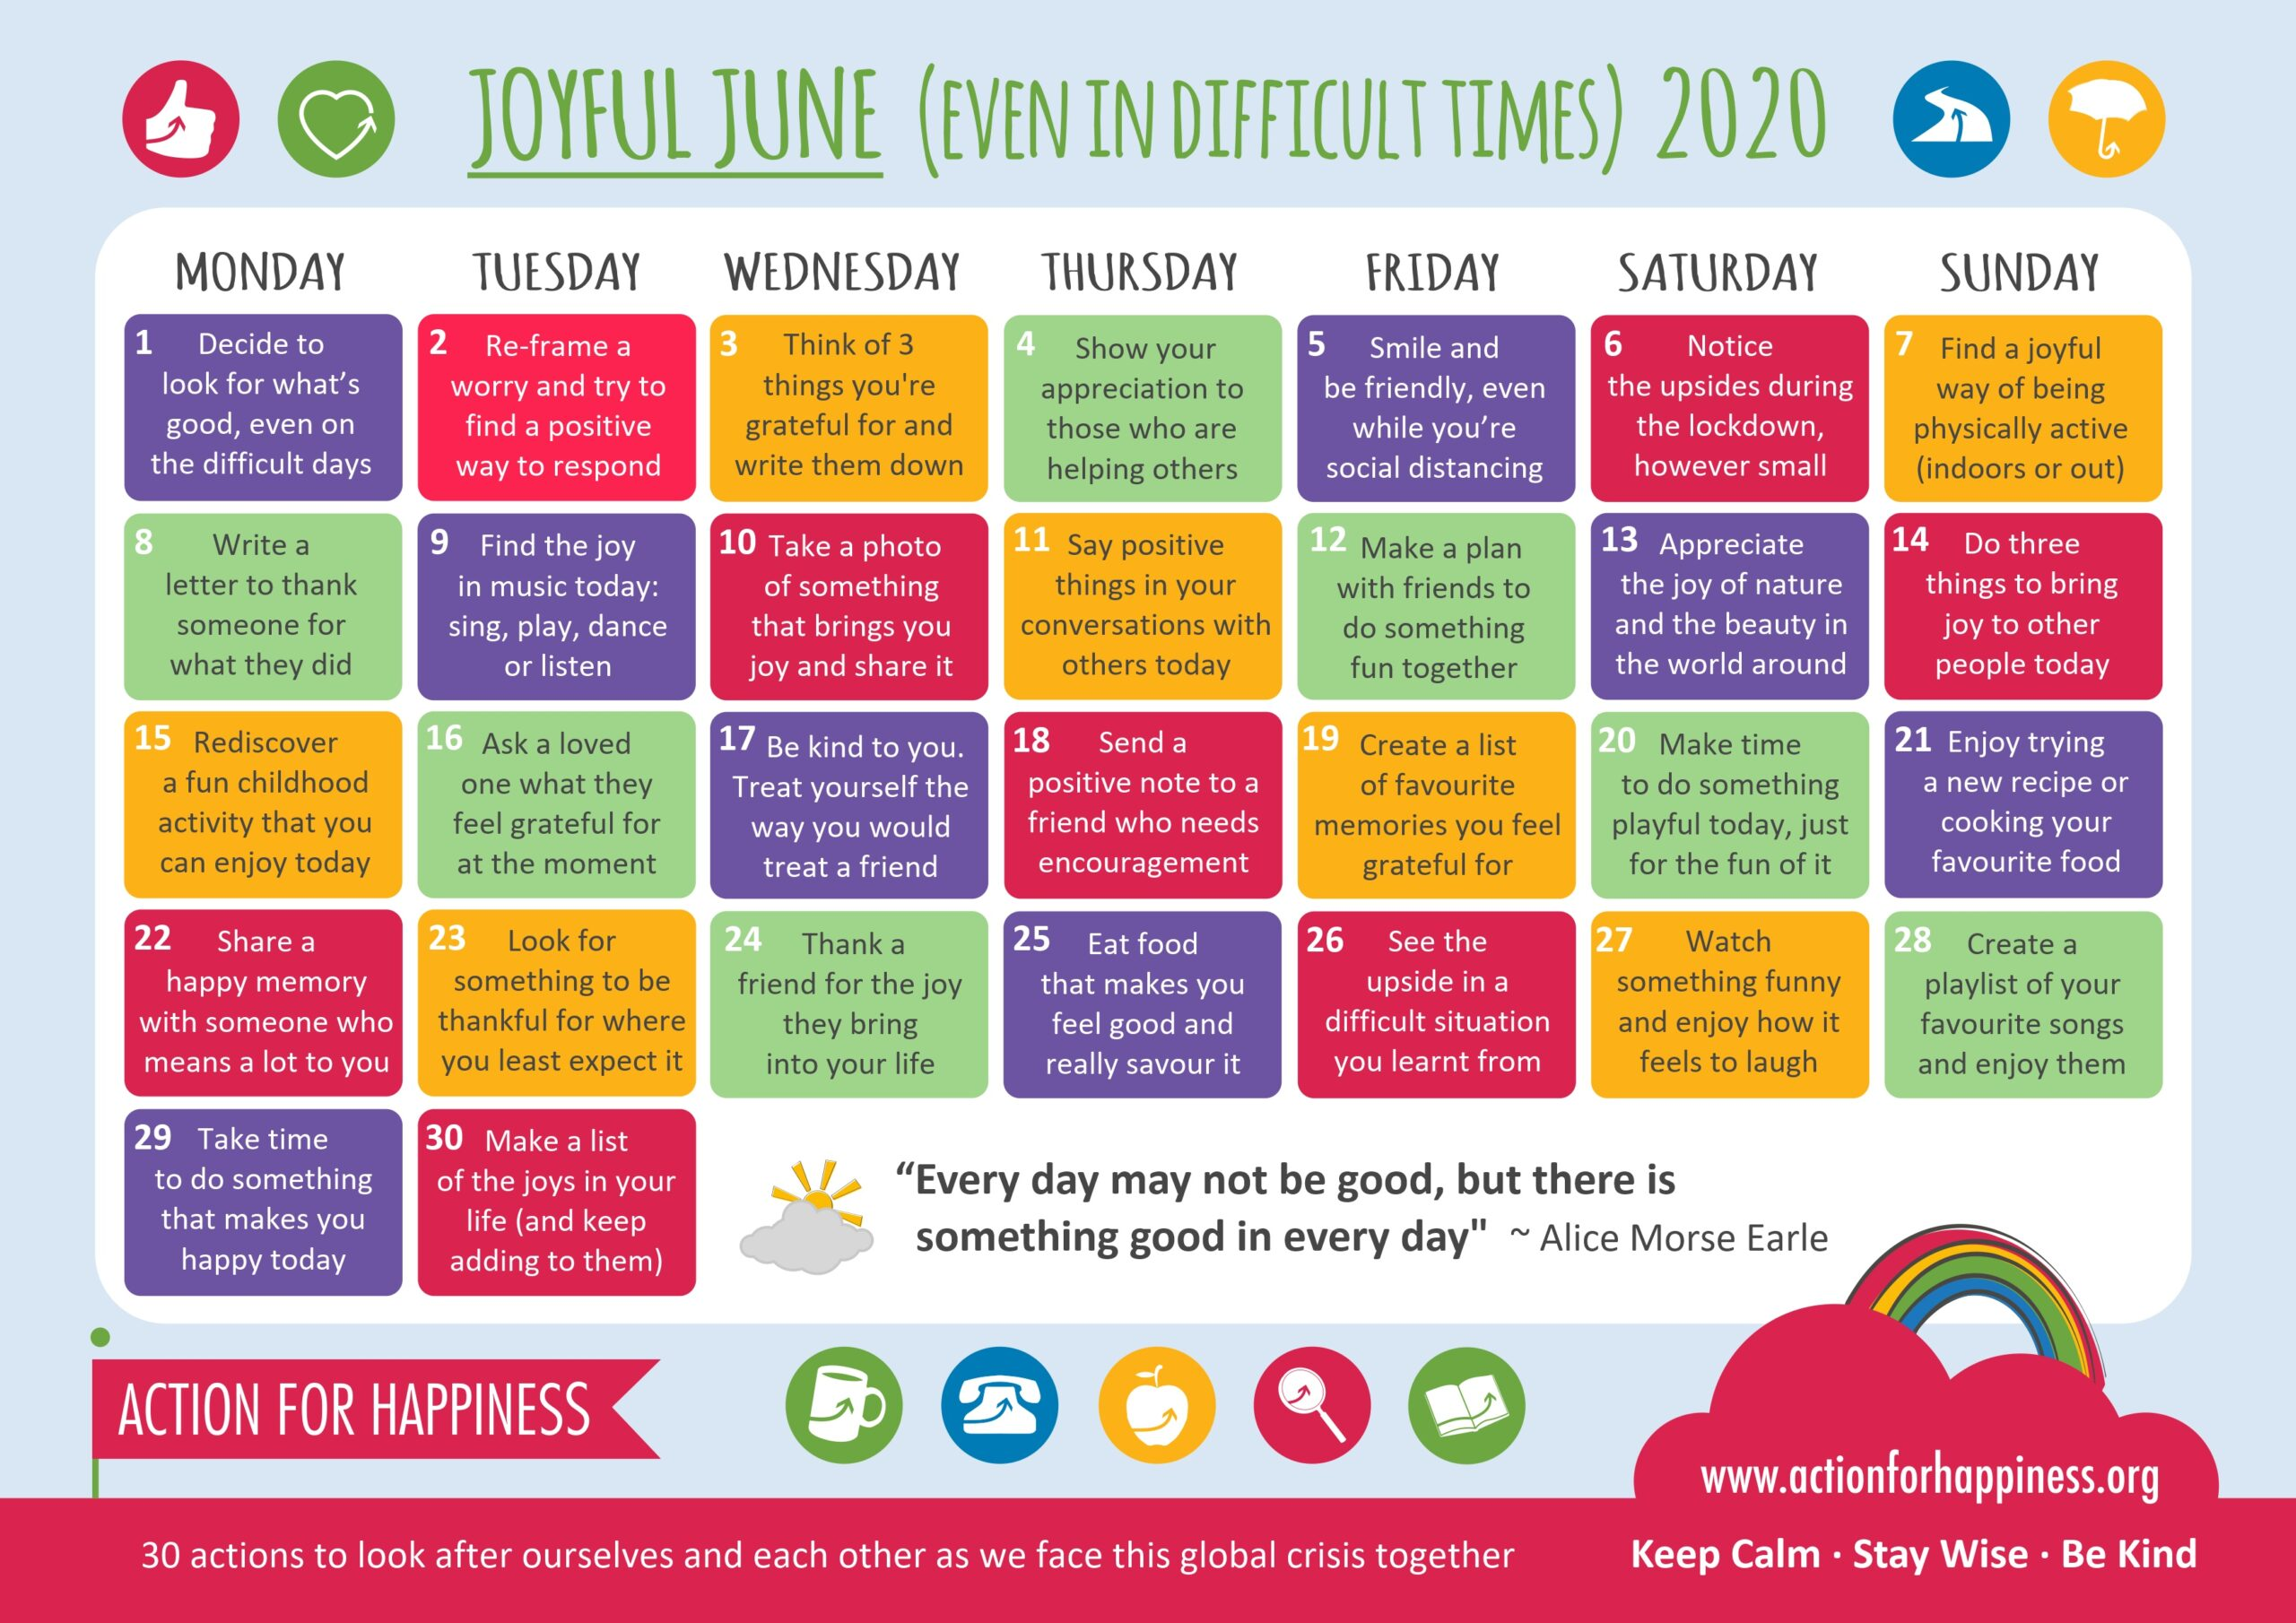 action for happiness calendar June